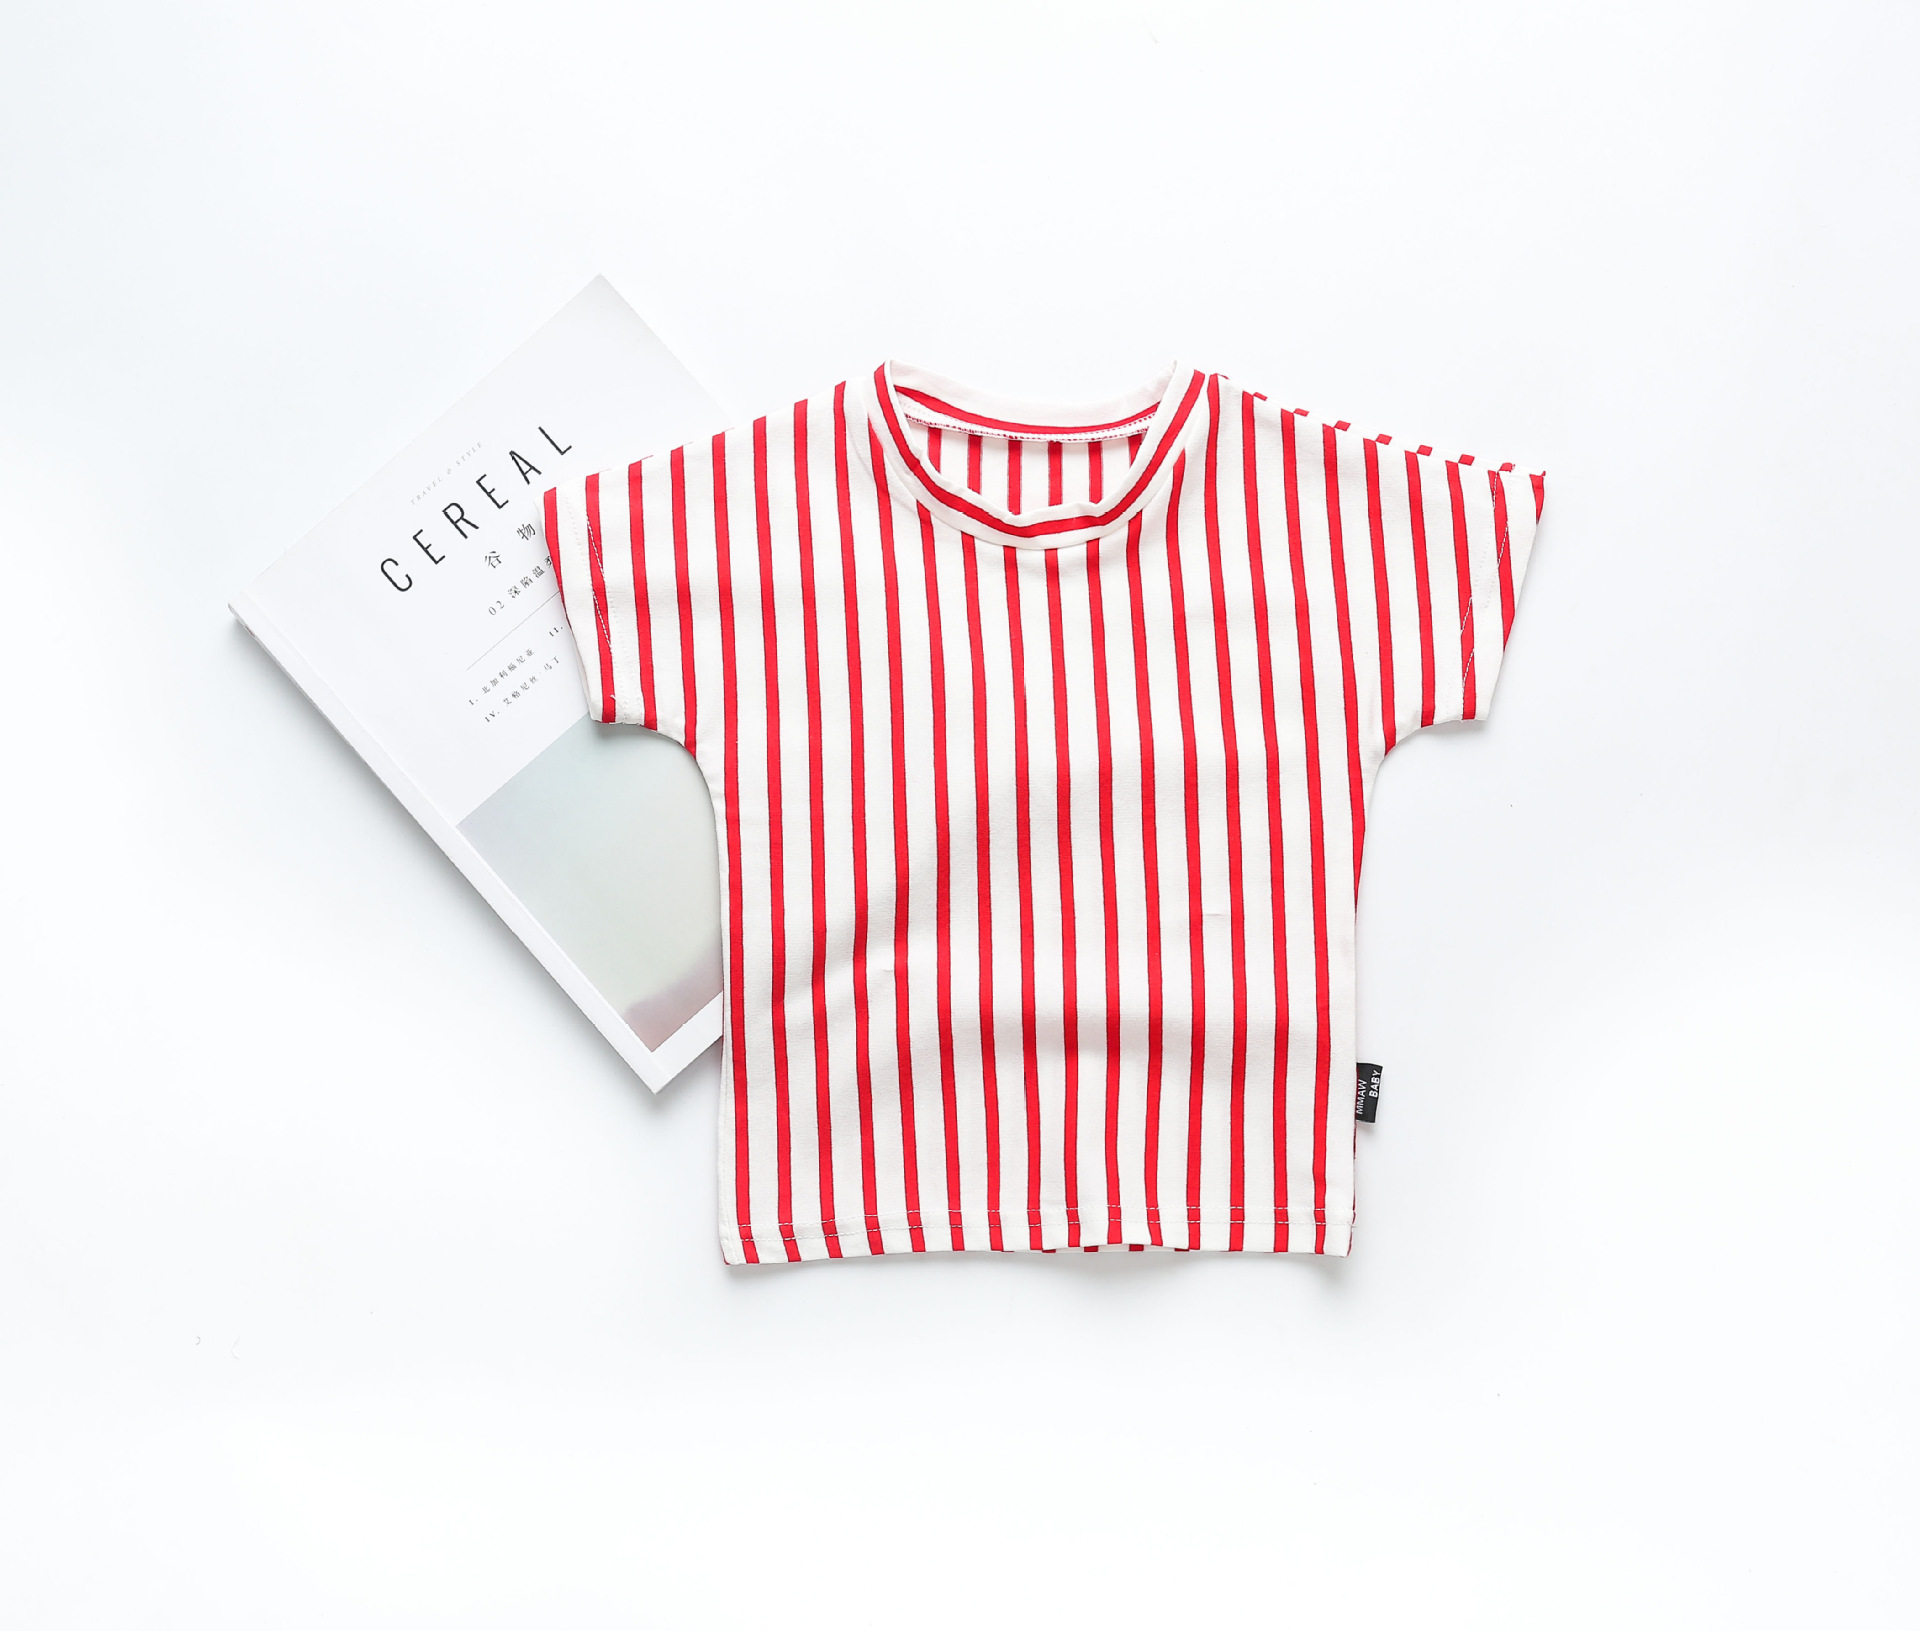 0ddd7a1d7ea Boys Summer Clothes Children Red and White Striped T Shirts 2018 Brand Tee  Shirt Fille Cotton Tops Kids Clothing Baby Boy Shirts